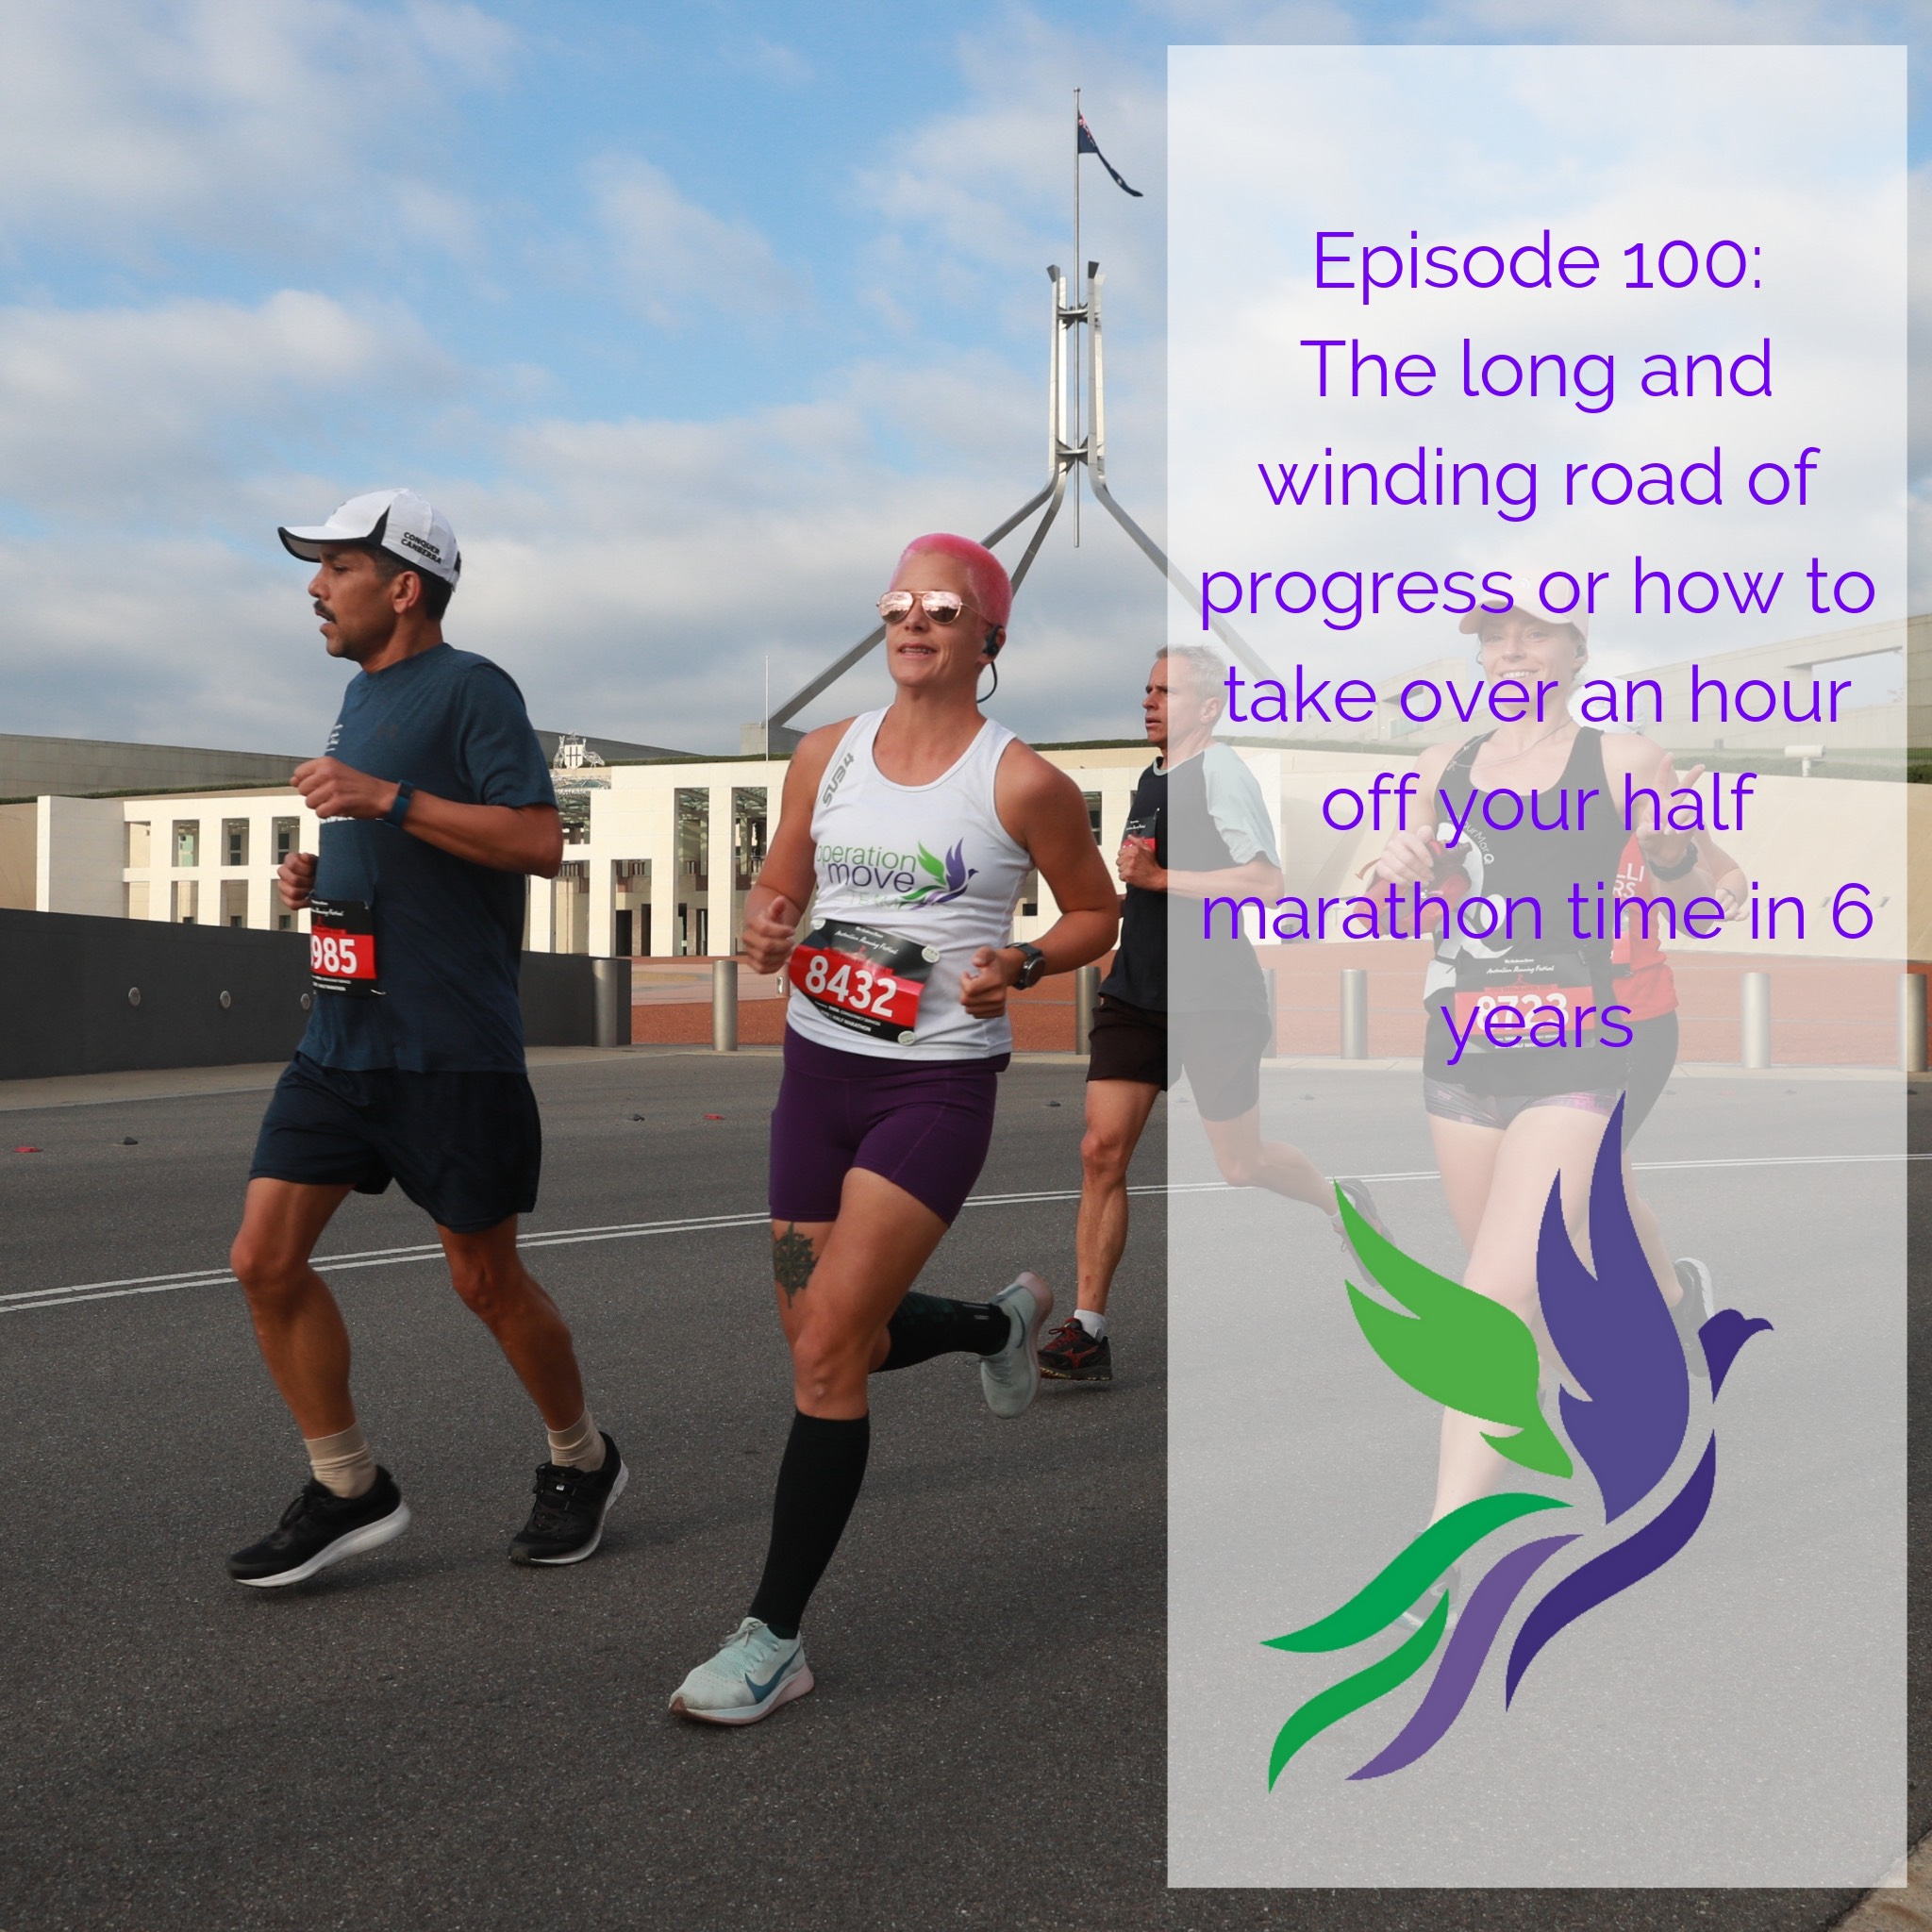 #100 The long and winding road of progress or how to take over an hour off your half marathon time in 6 years